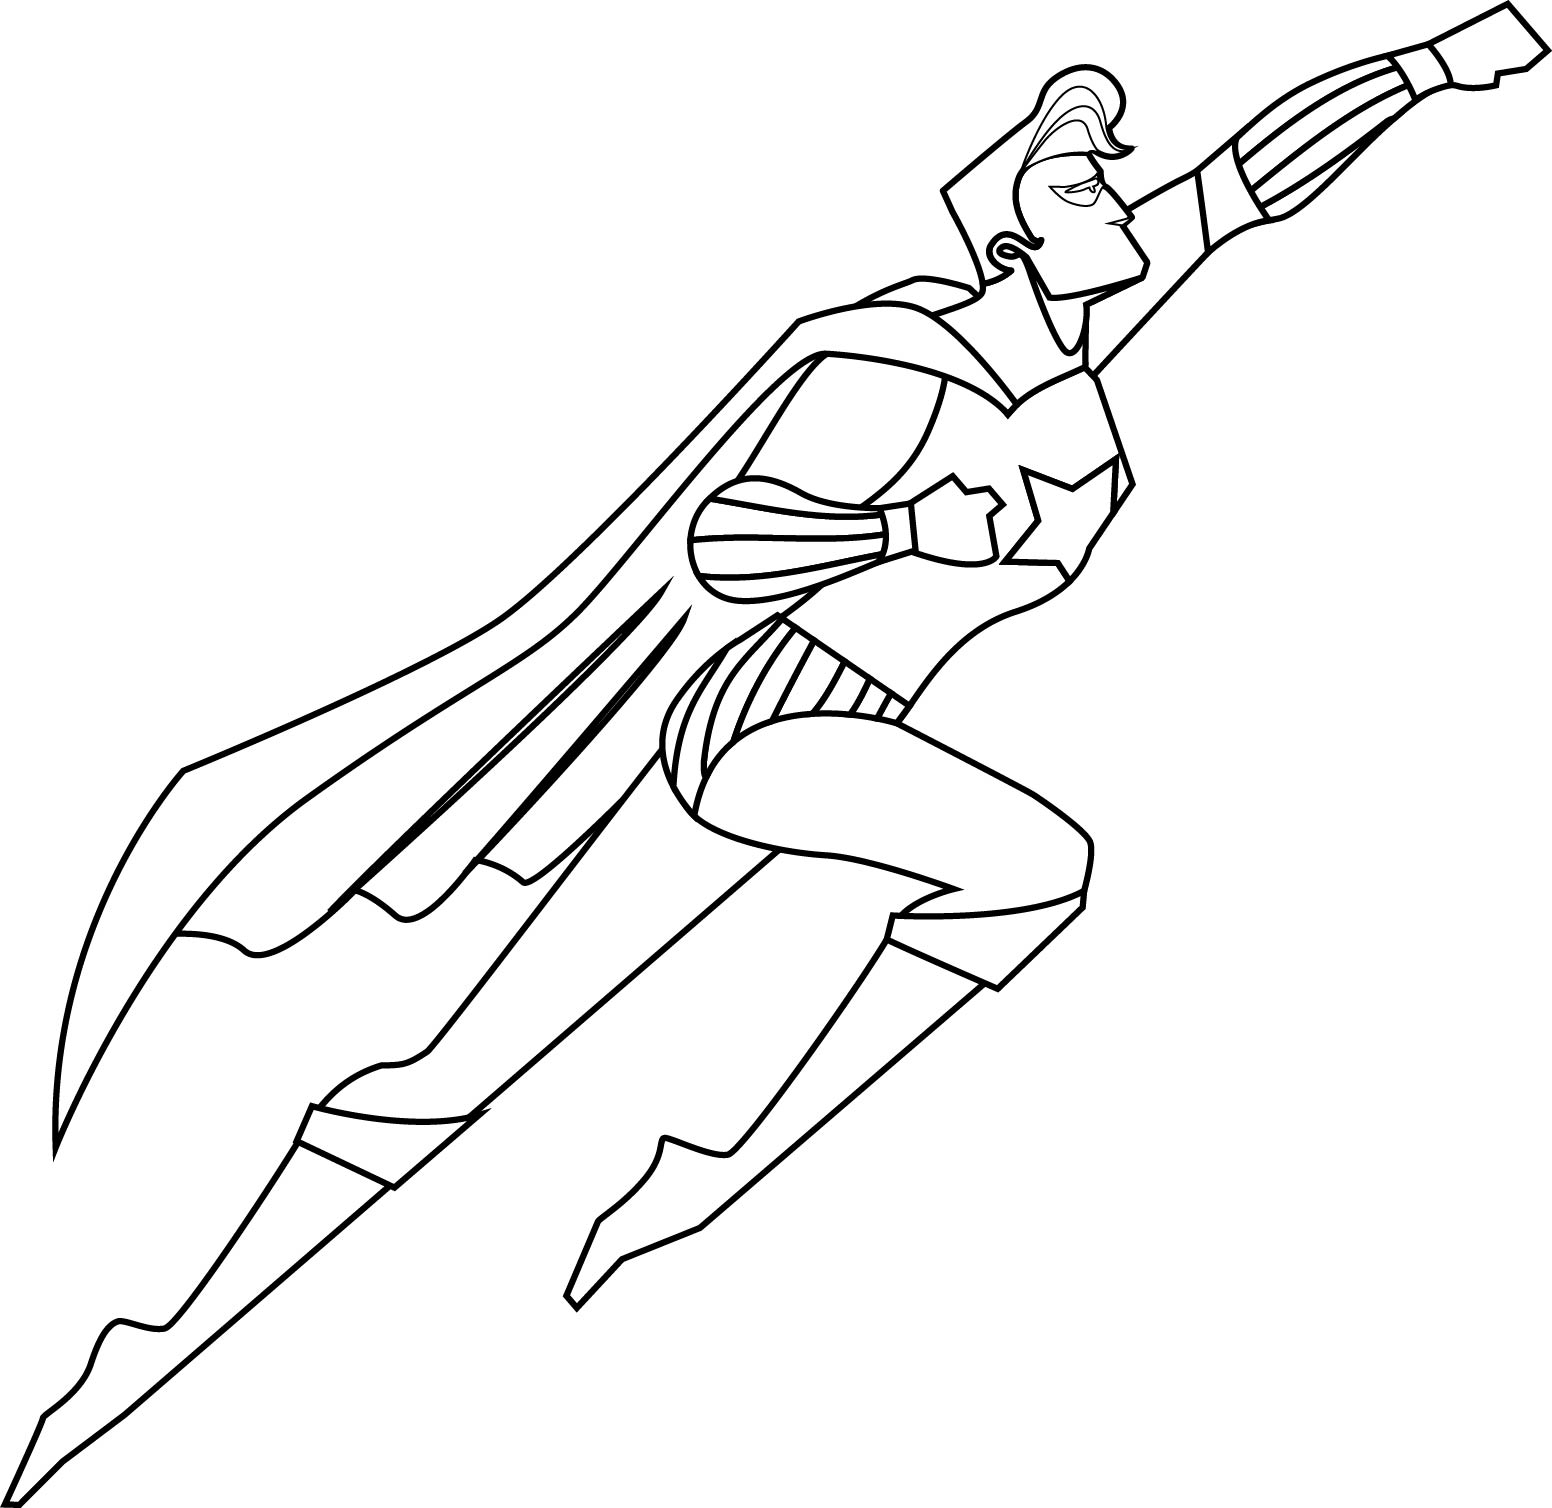 Superman Superheroes Coloring Page